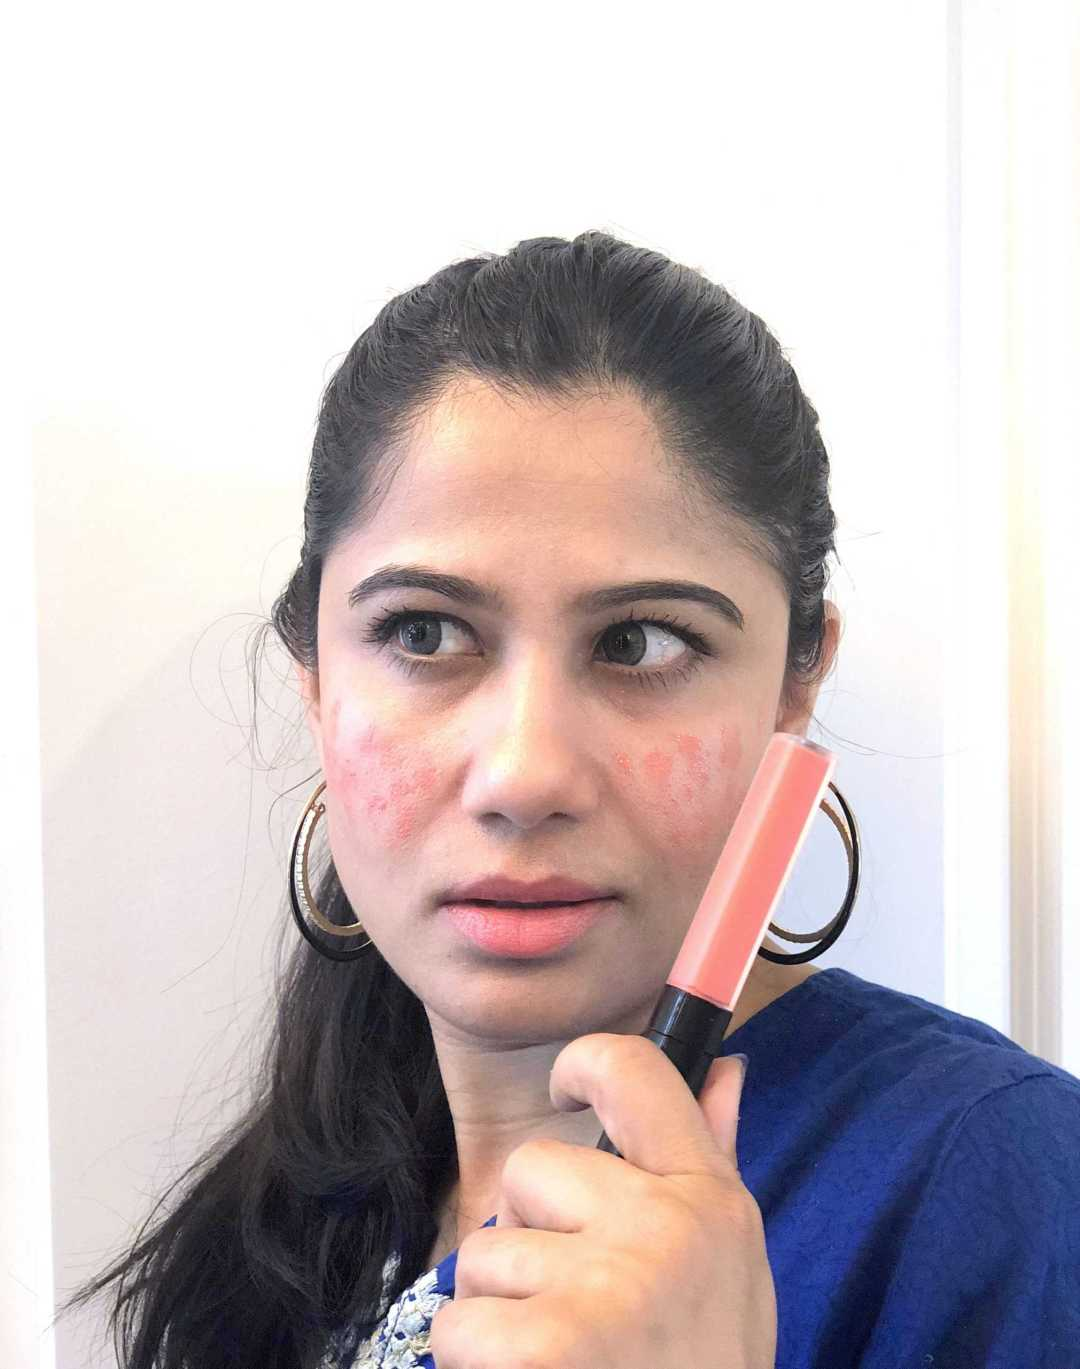 Chanel Rouge Coco LIp Blush on Cheeks and Lips